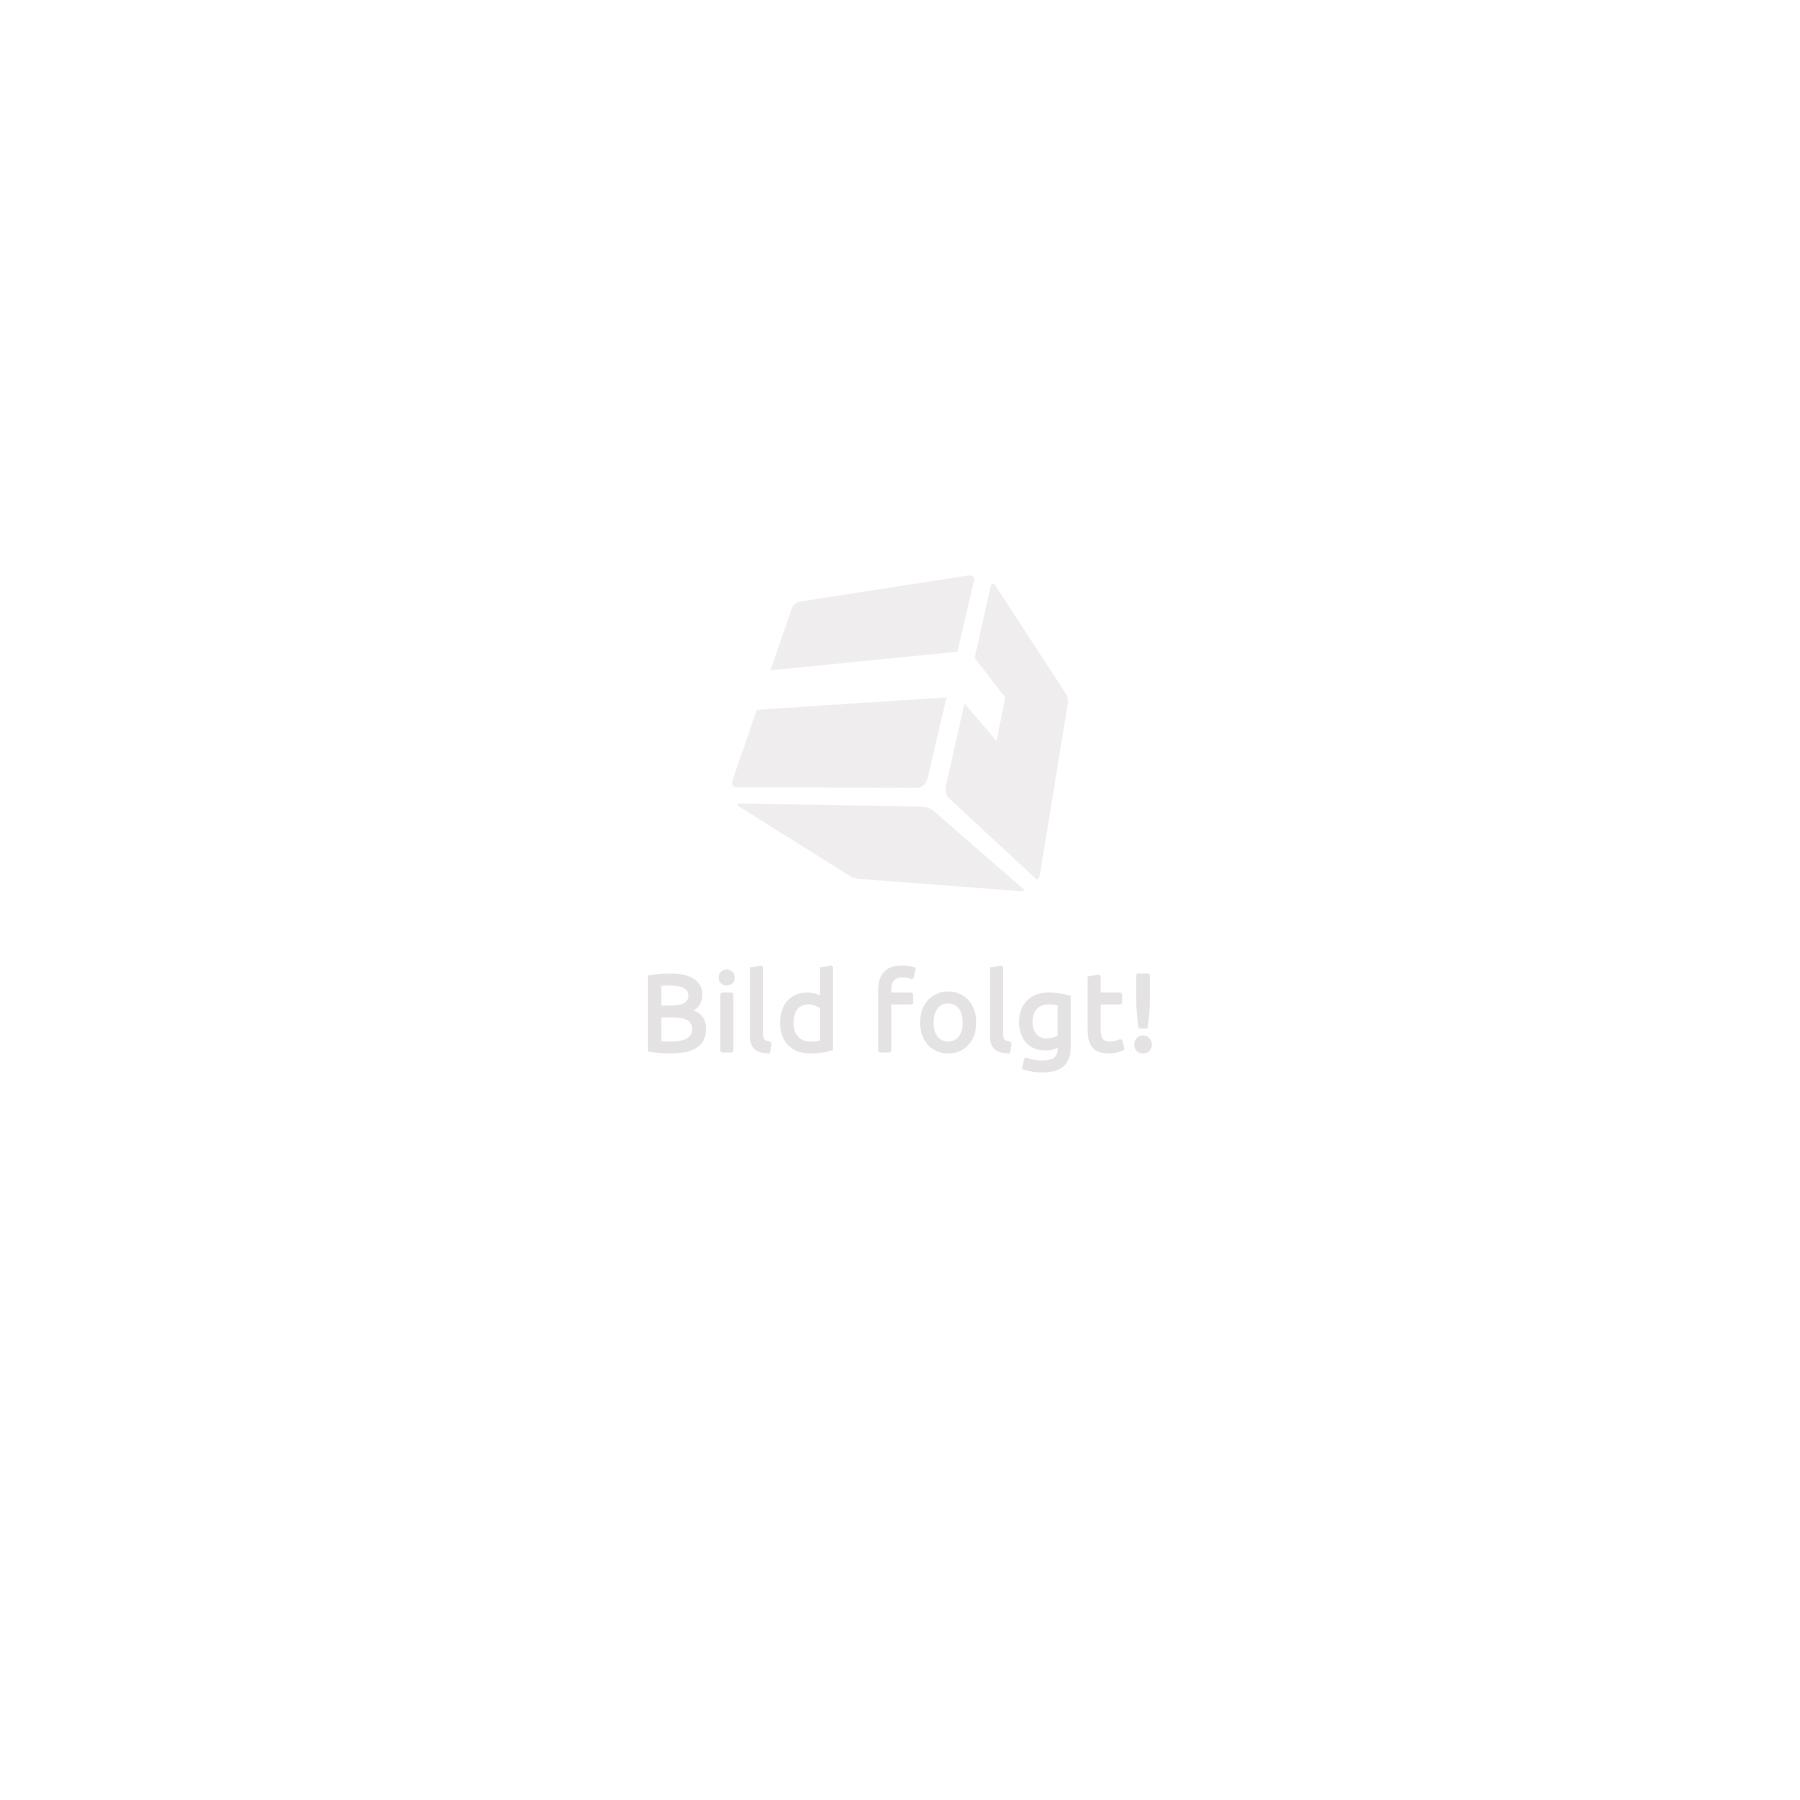 TV wall mount for 32-63 inch (81-160cm) fixed